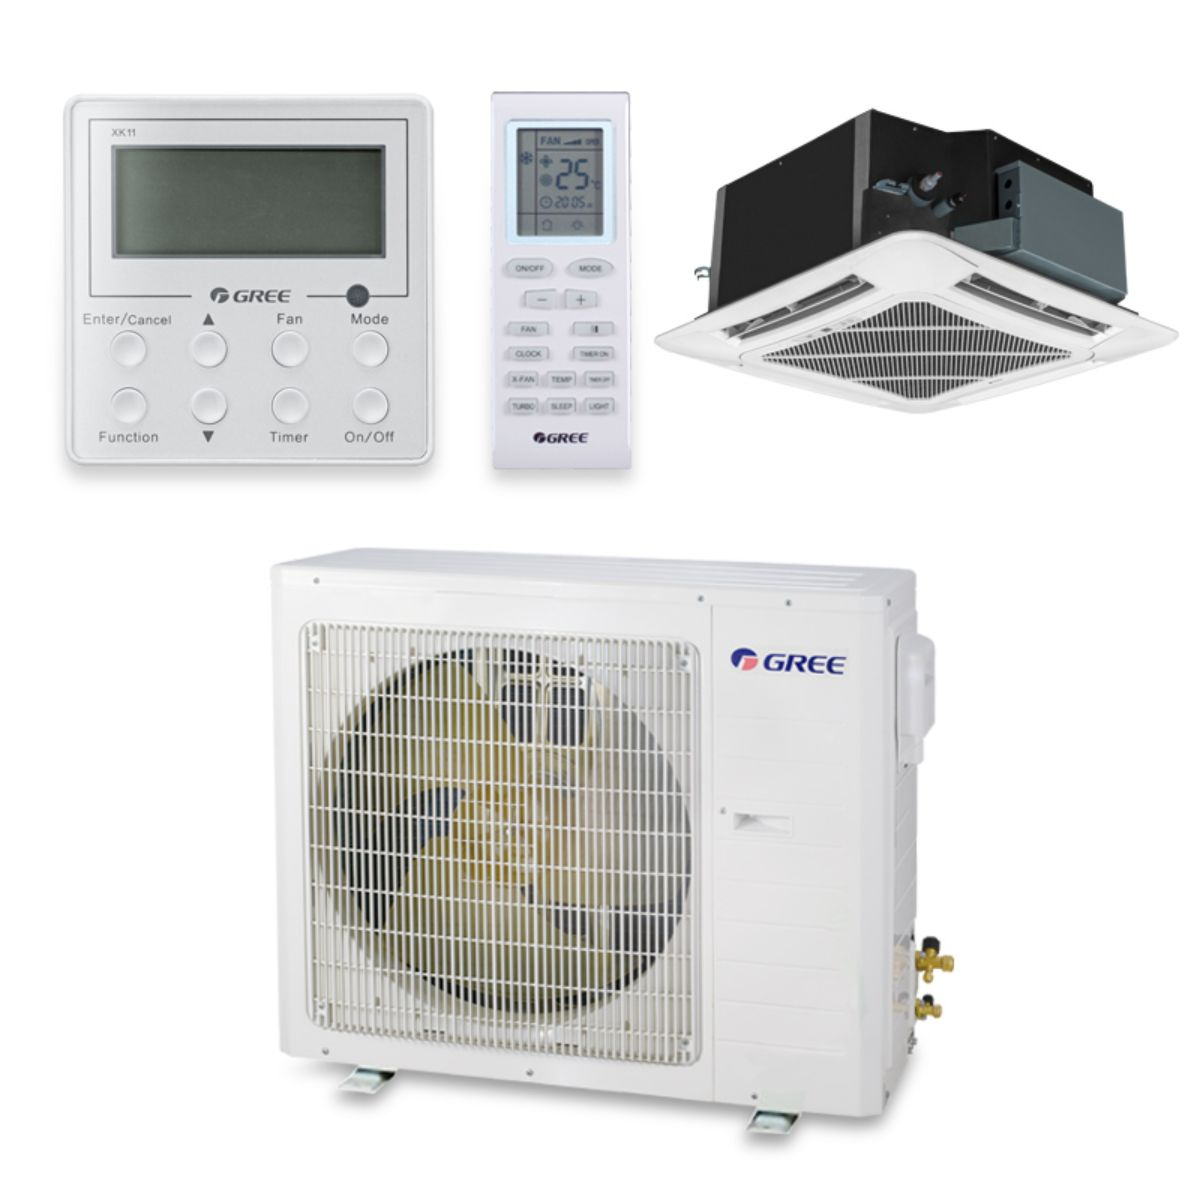 Gree UMAT36HP230V1AC-S - 36,000 BTU 16 SEER Ceiling Cassette Ductless Mini Split Air Conditioner Heat Pump 208-230V